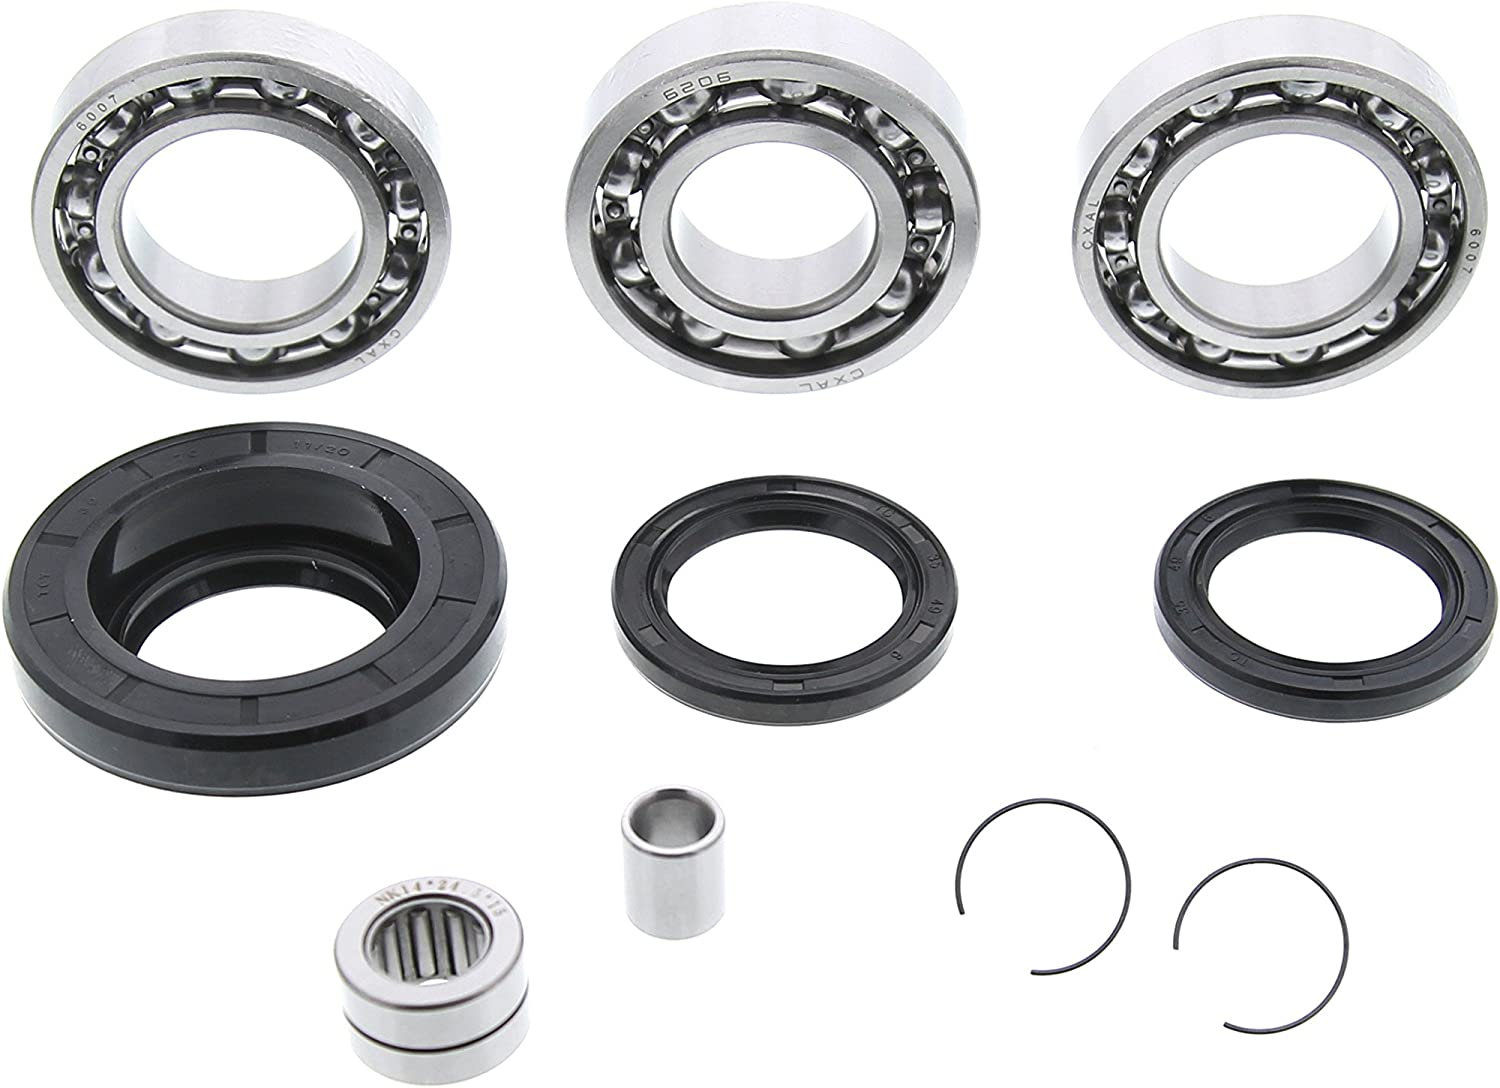 [DIAGRAM_3ER]  Amazon.com: Fits Honda Foreman 450 TRX450 Rear Differential Bearing and Seal  Kit: Automotive | Honda Atv Pinion Bearing Removal 450 |  | Amazon.com